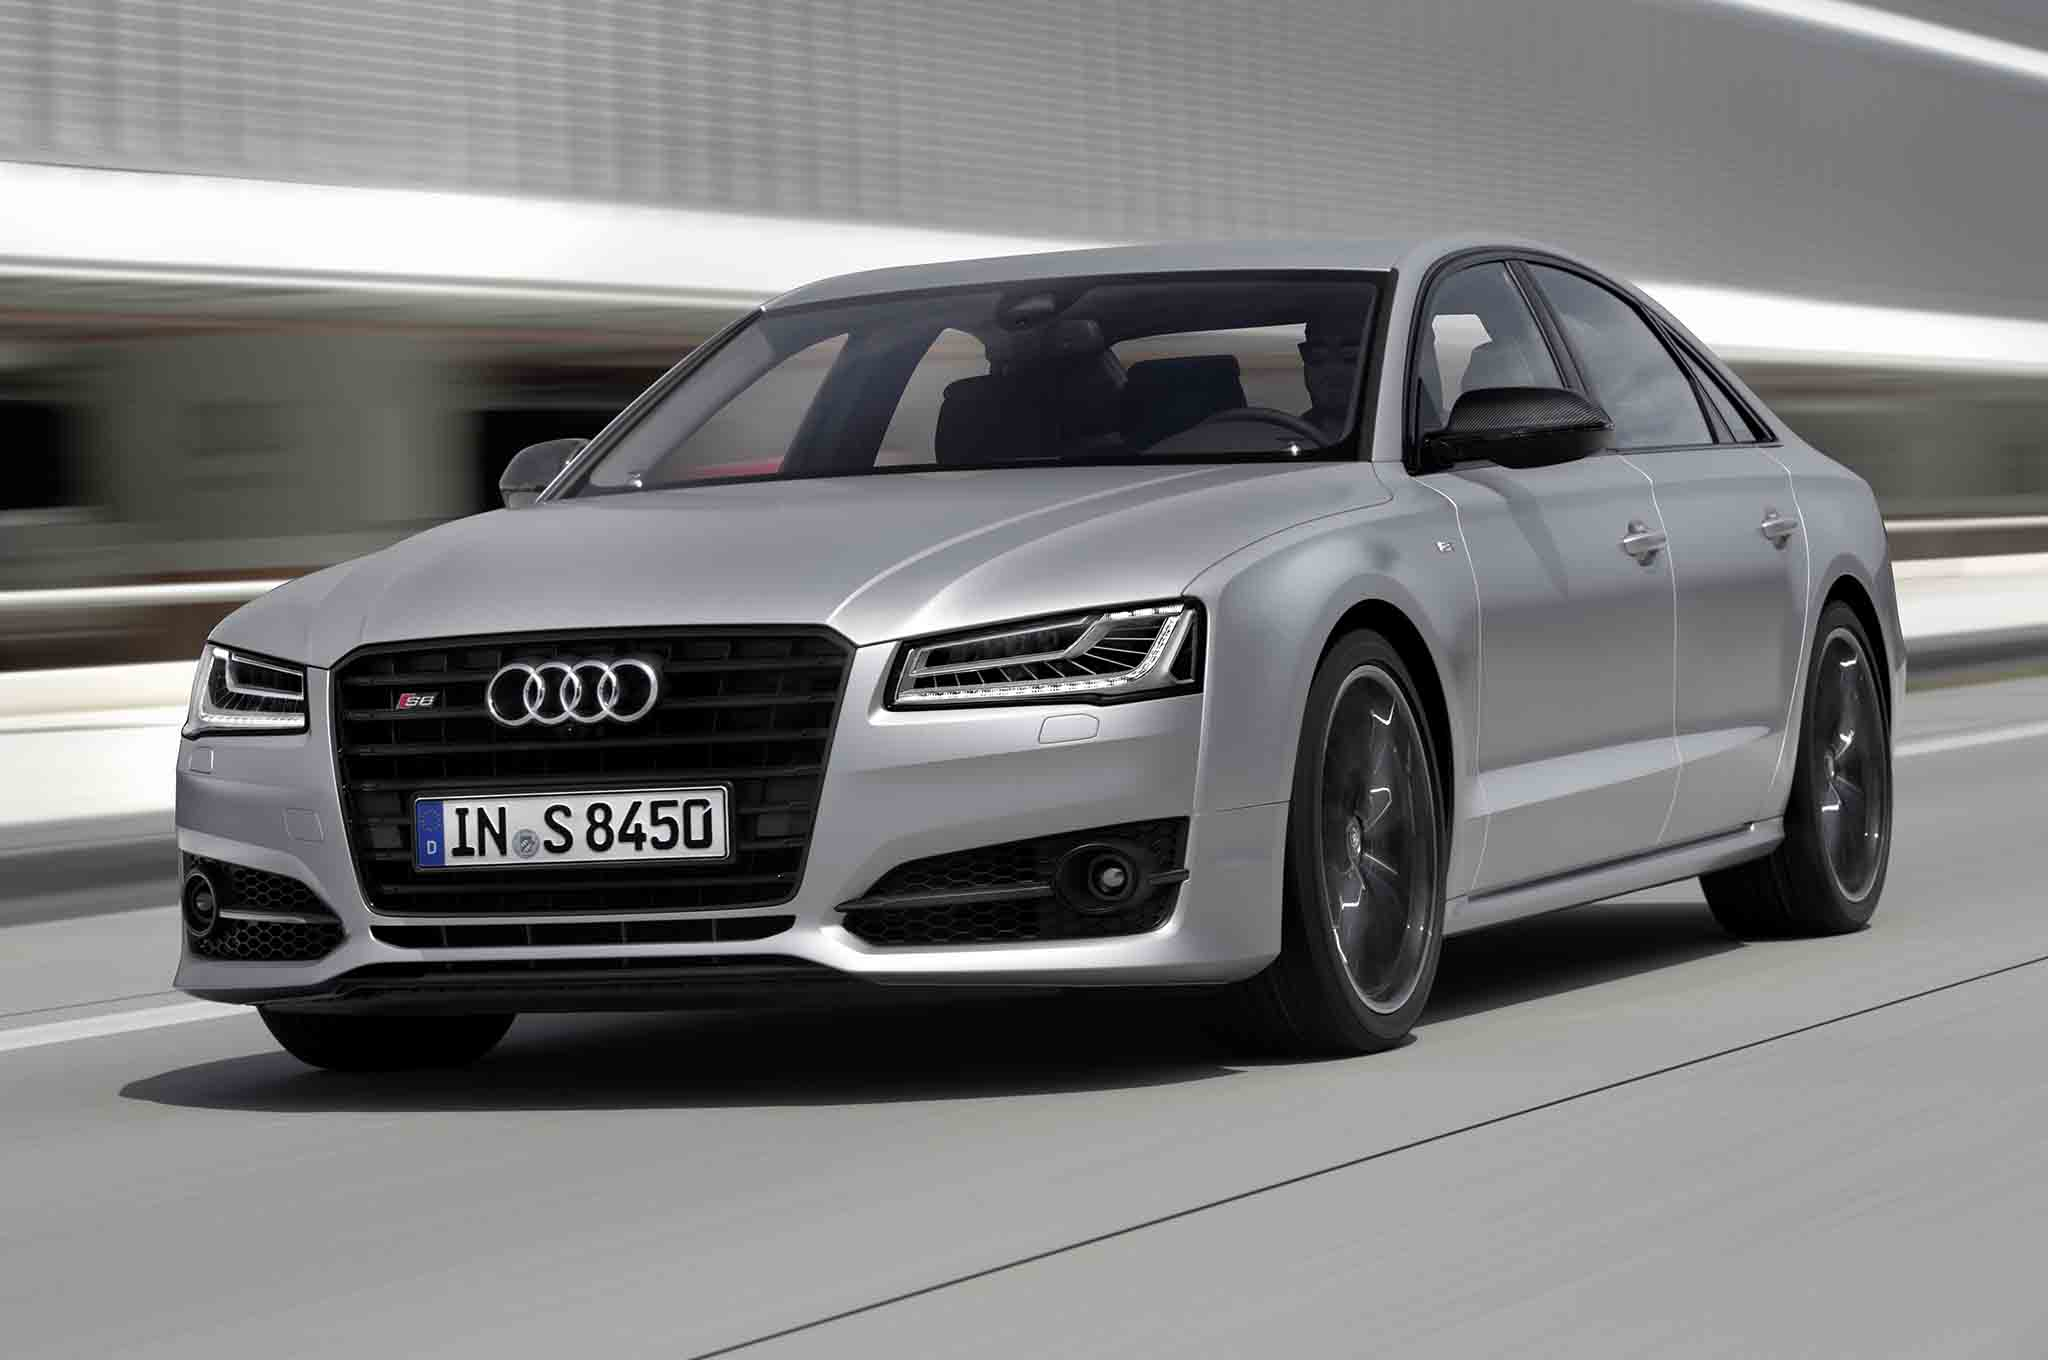 Audi RS 7 Performance and S8 Plus Launching in the U.S. Soon